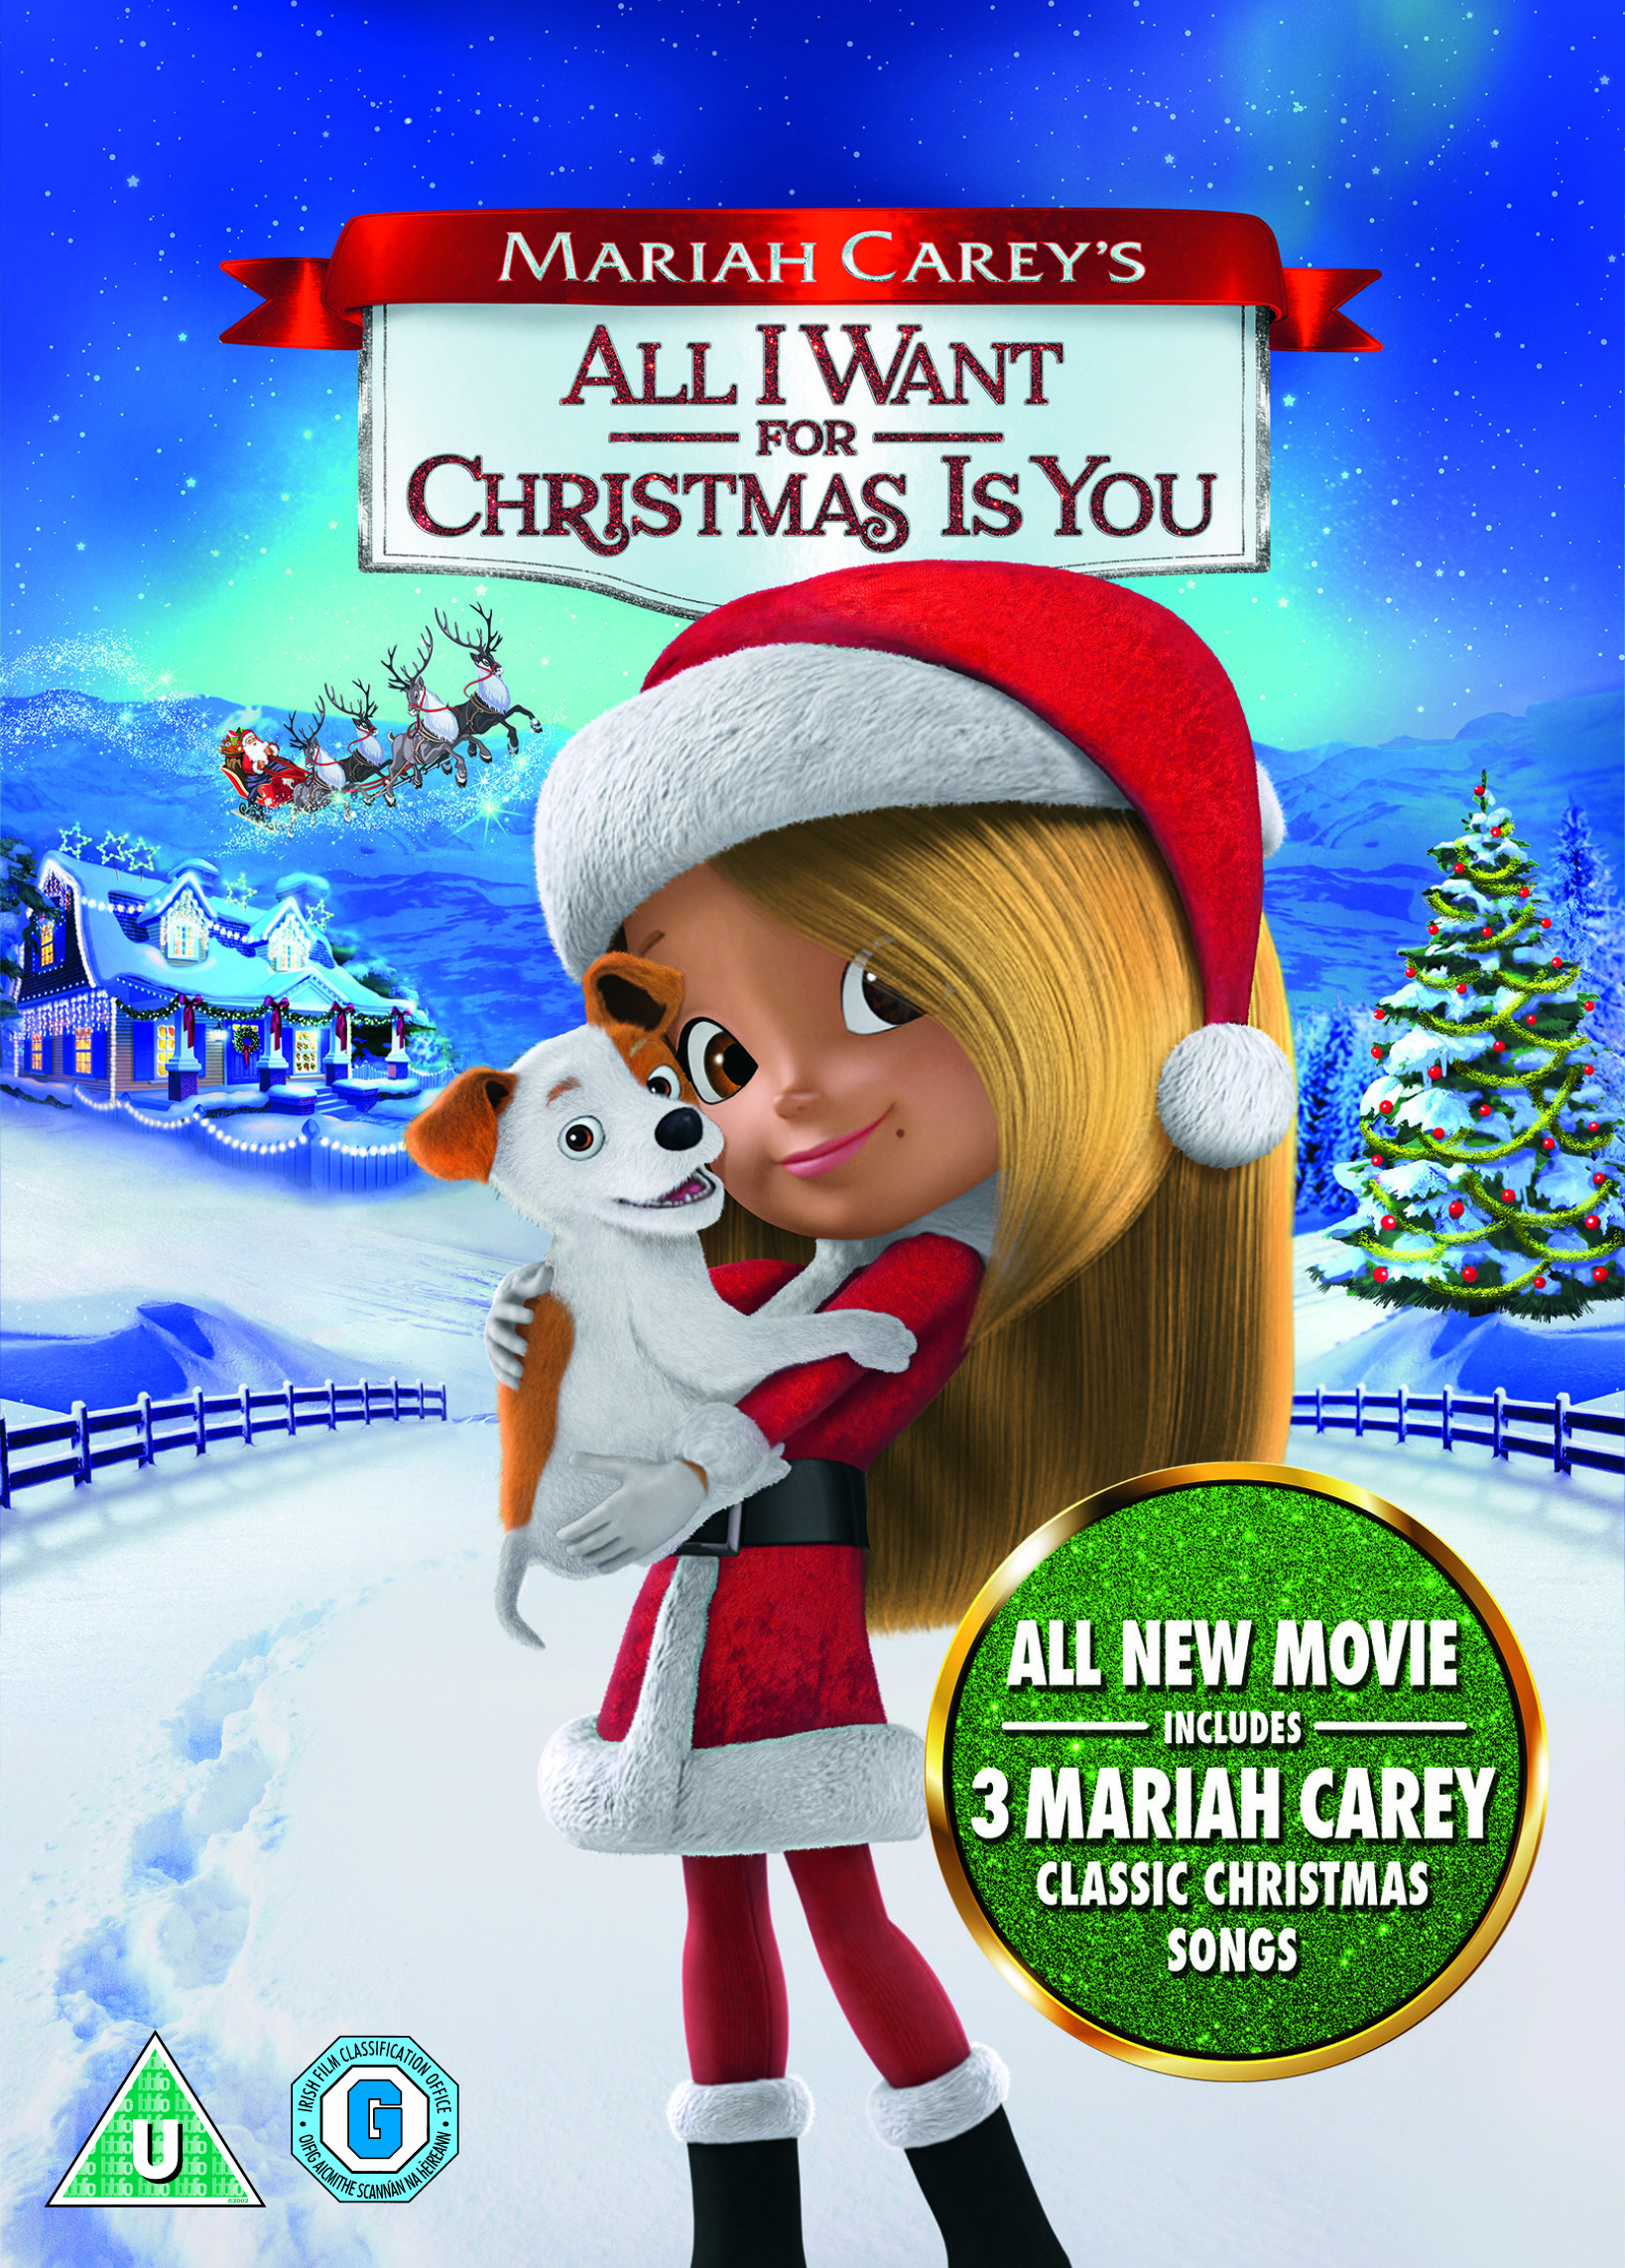 Mariah Careys All I Want For Christmas Is You.Mariah Carey S All I Want For Christmas Is You Dvd